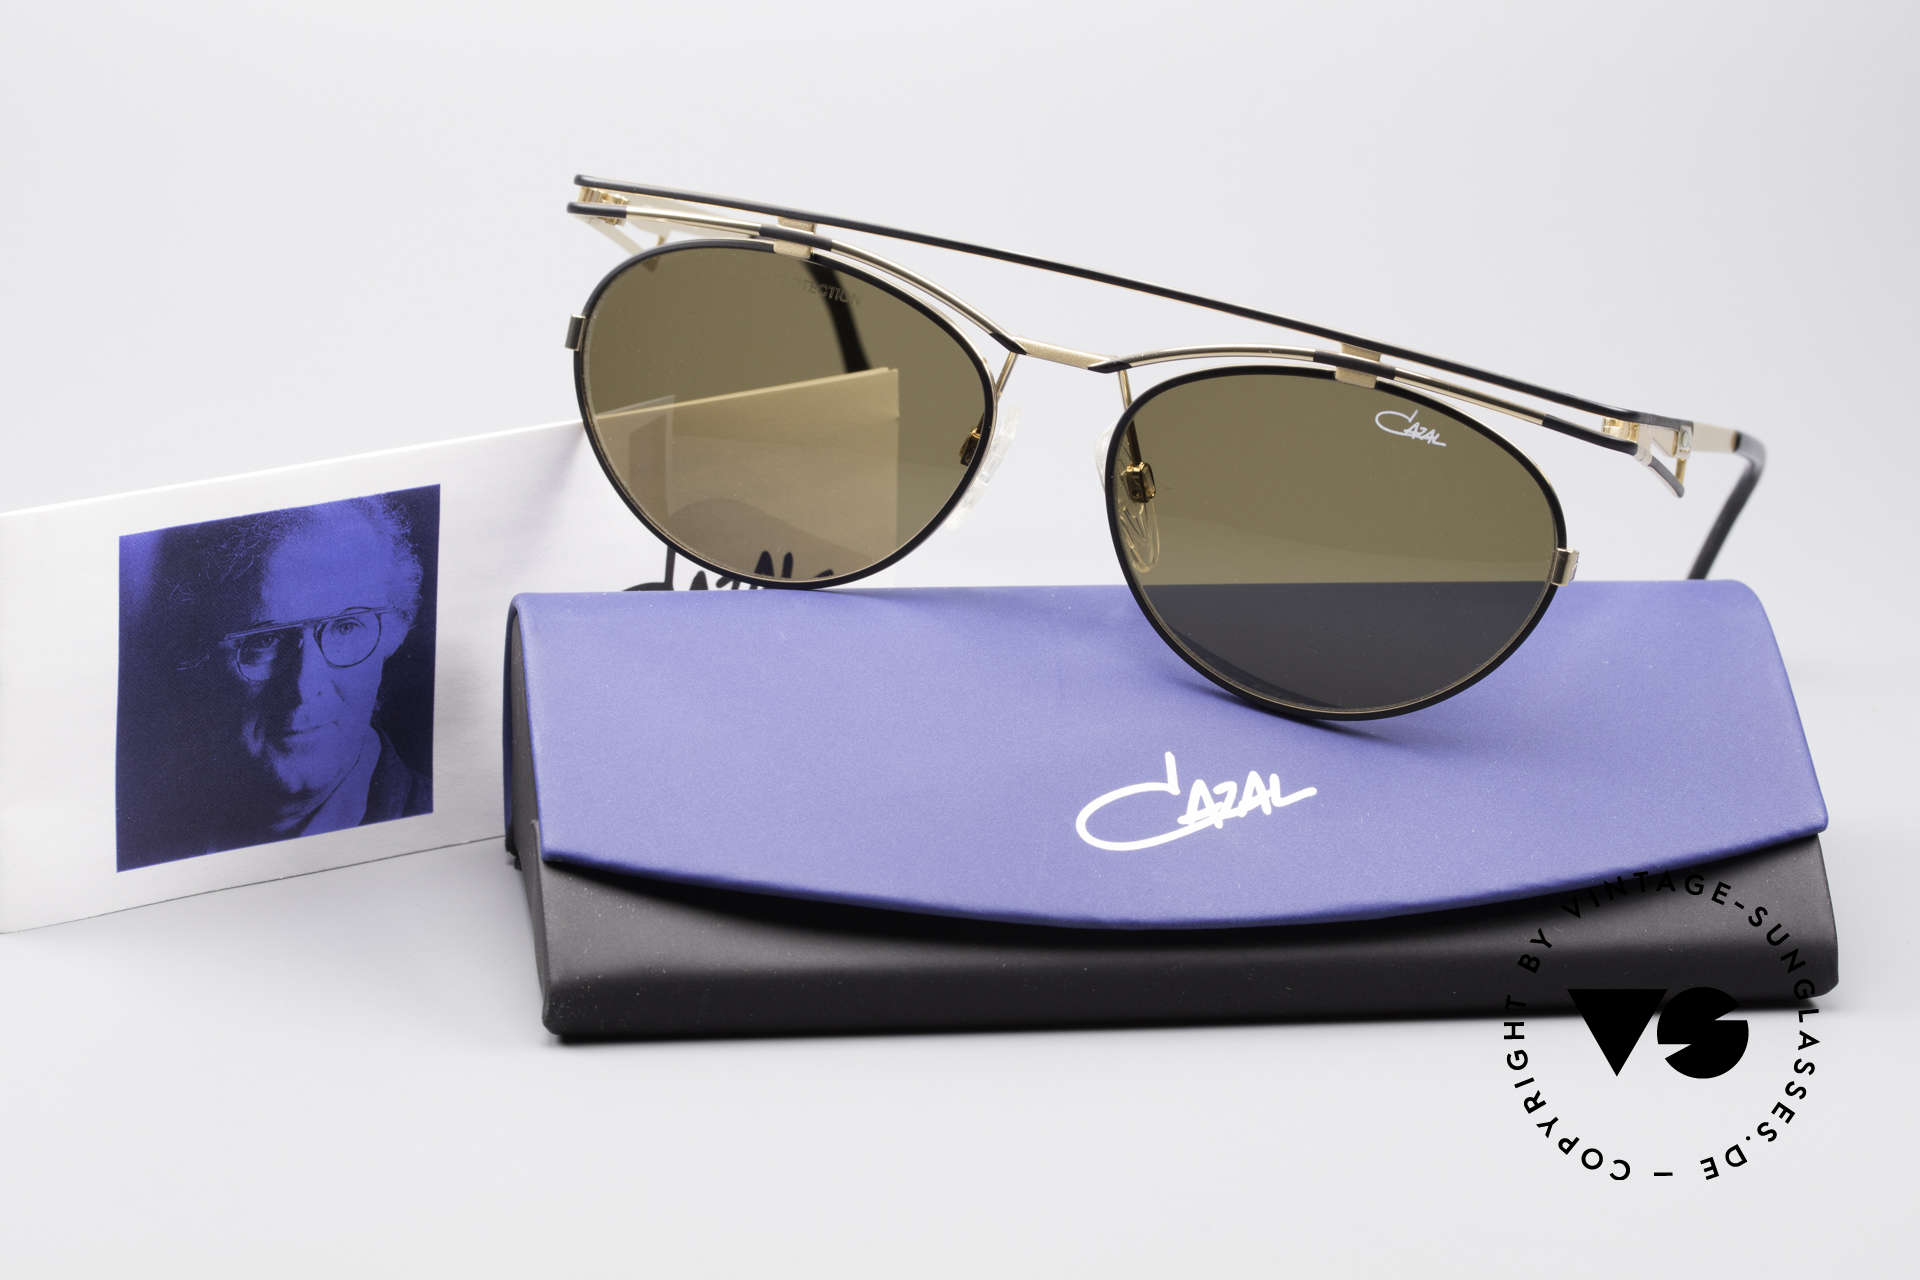 Cazal 970 Extraordinary 90's Shades, Size: large, Made for Women